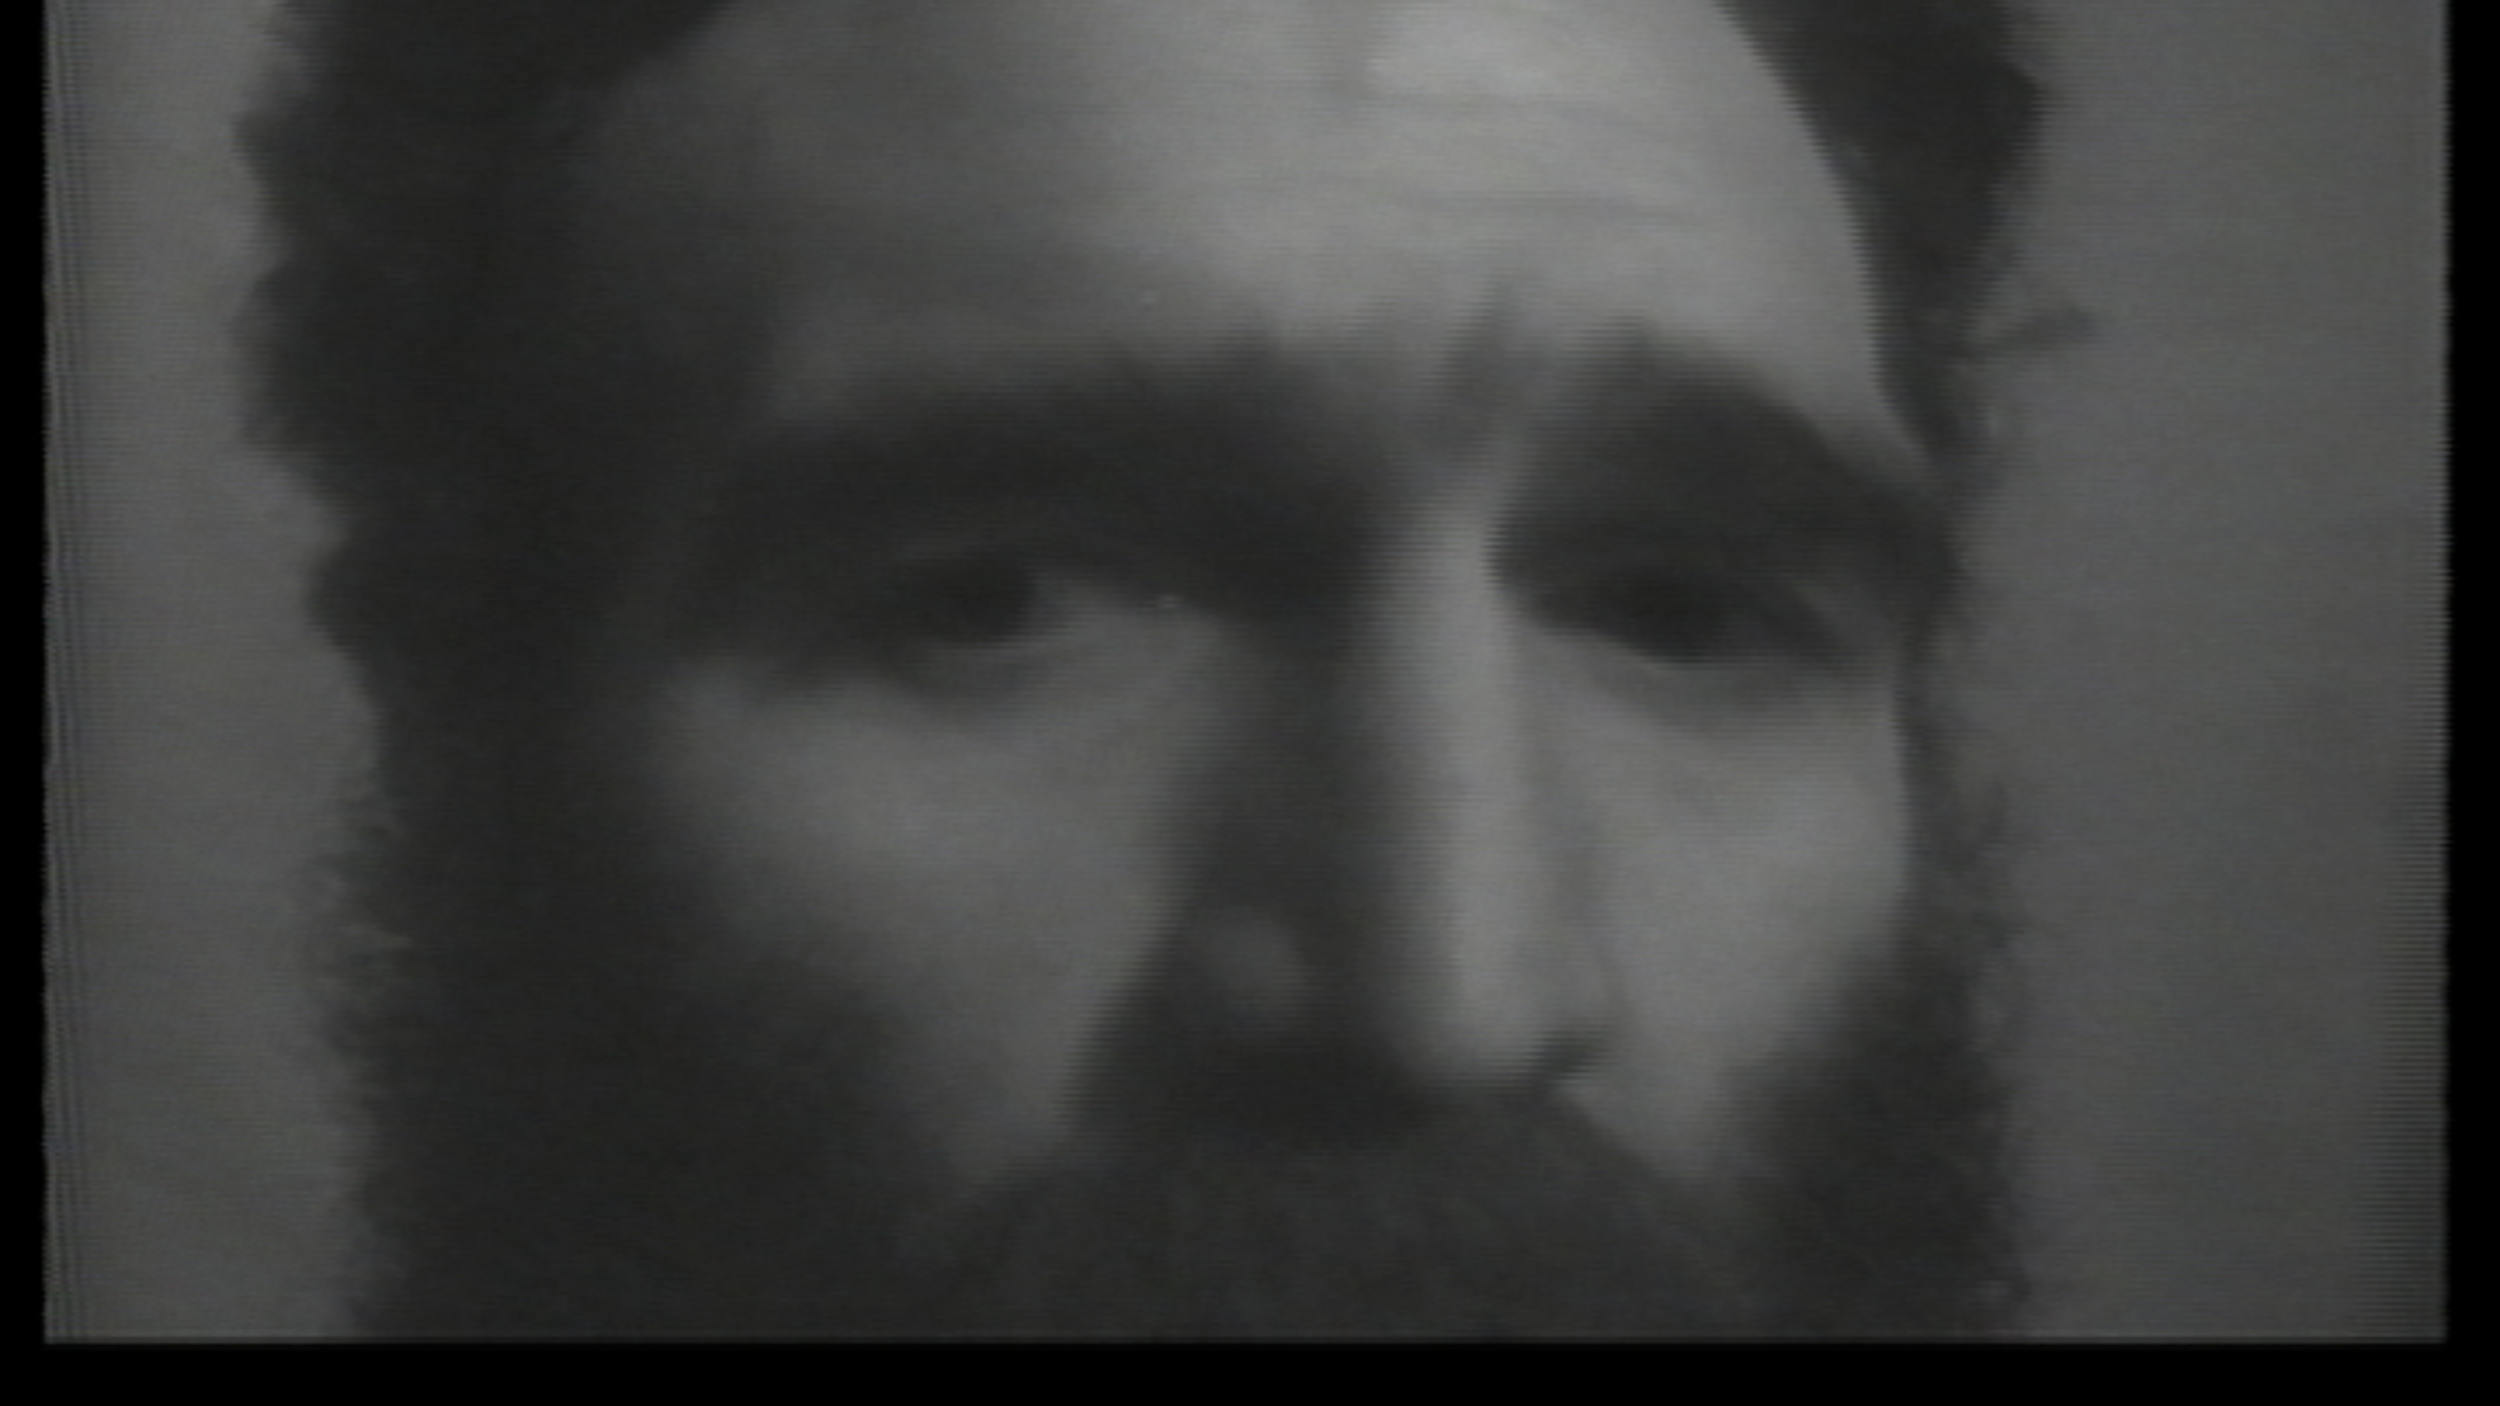 Paul Ryan,  Video Wake For My Father , still from a video,1972. Courtesy of The ZKM | Center for Art and Media.